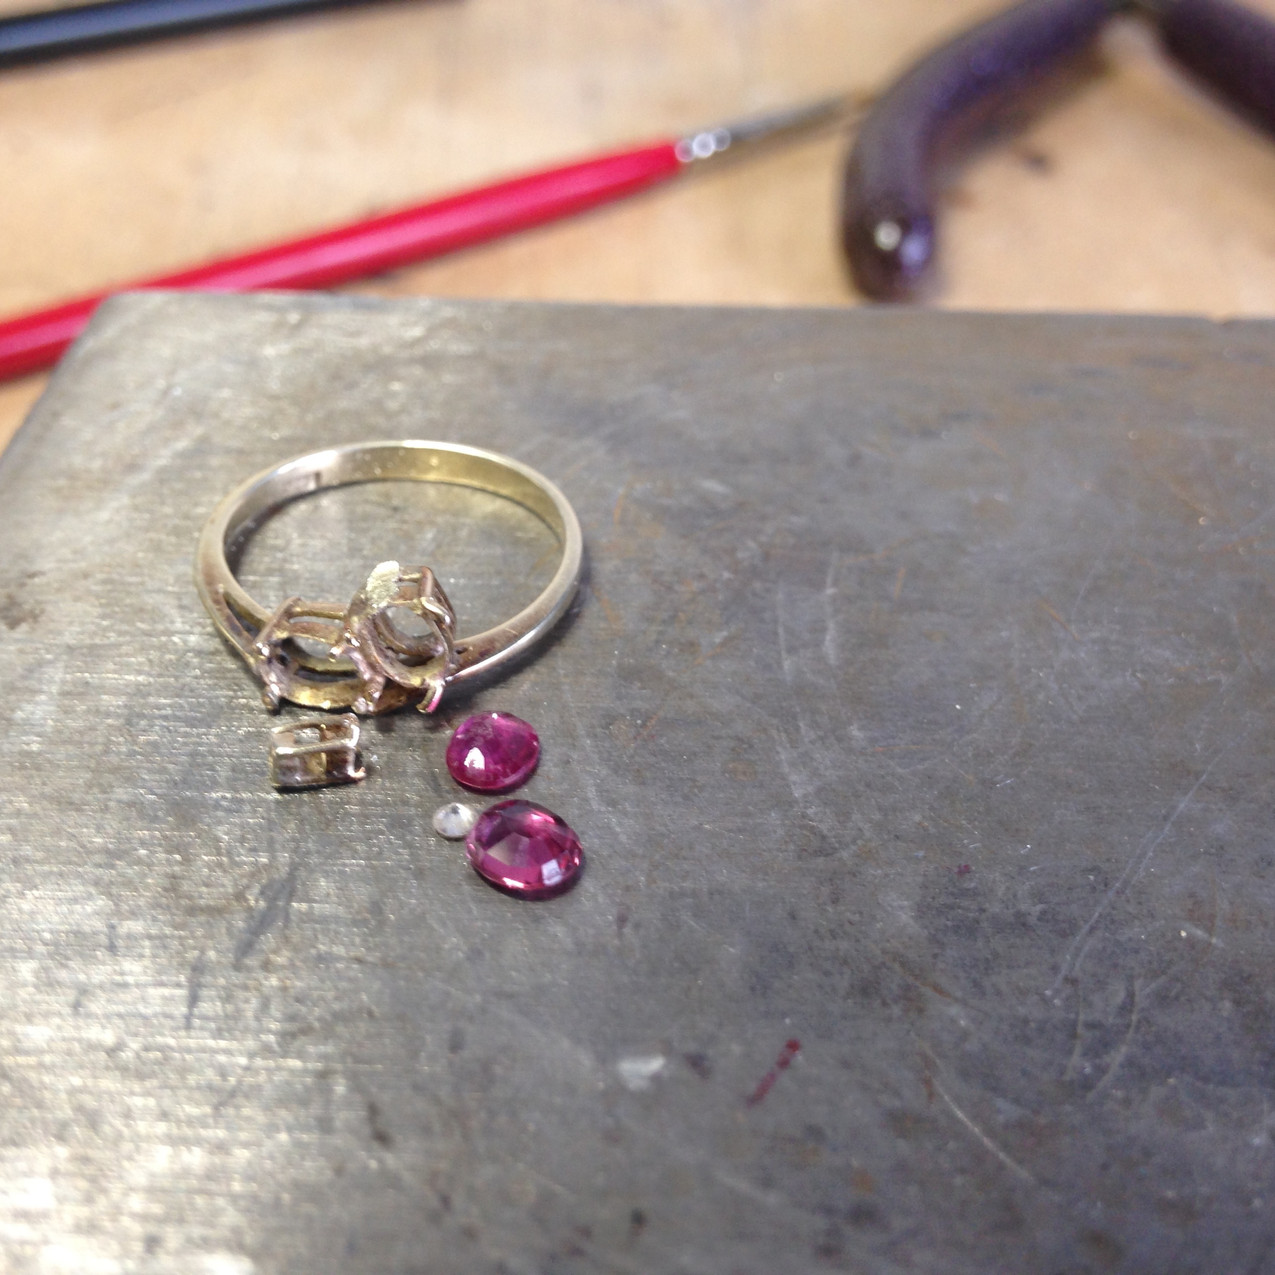 Removal of ruby and diamond stones for ring remodelling.